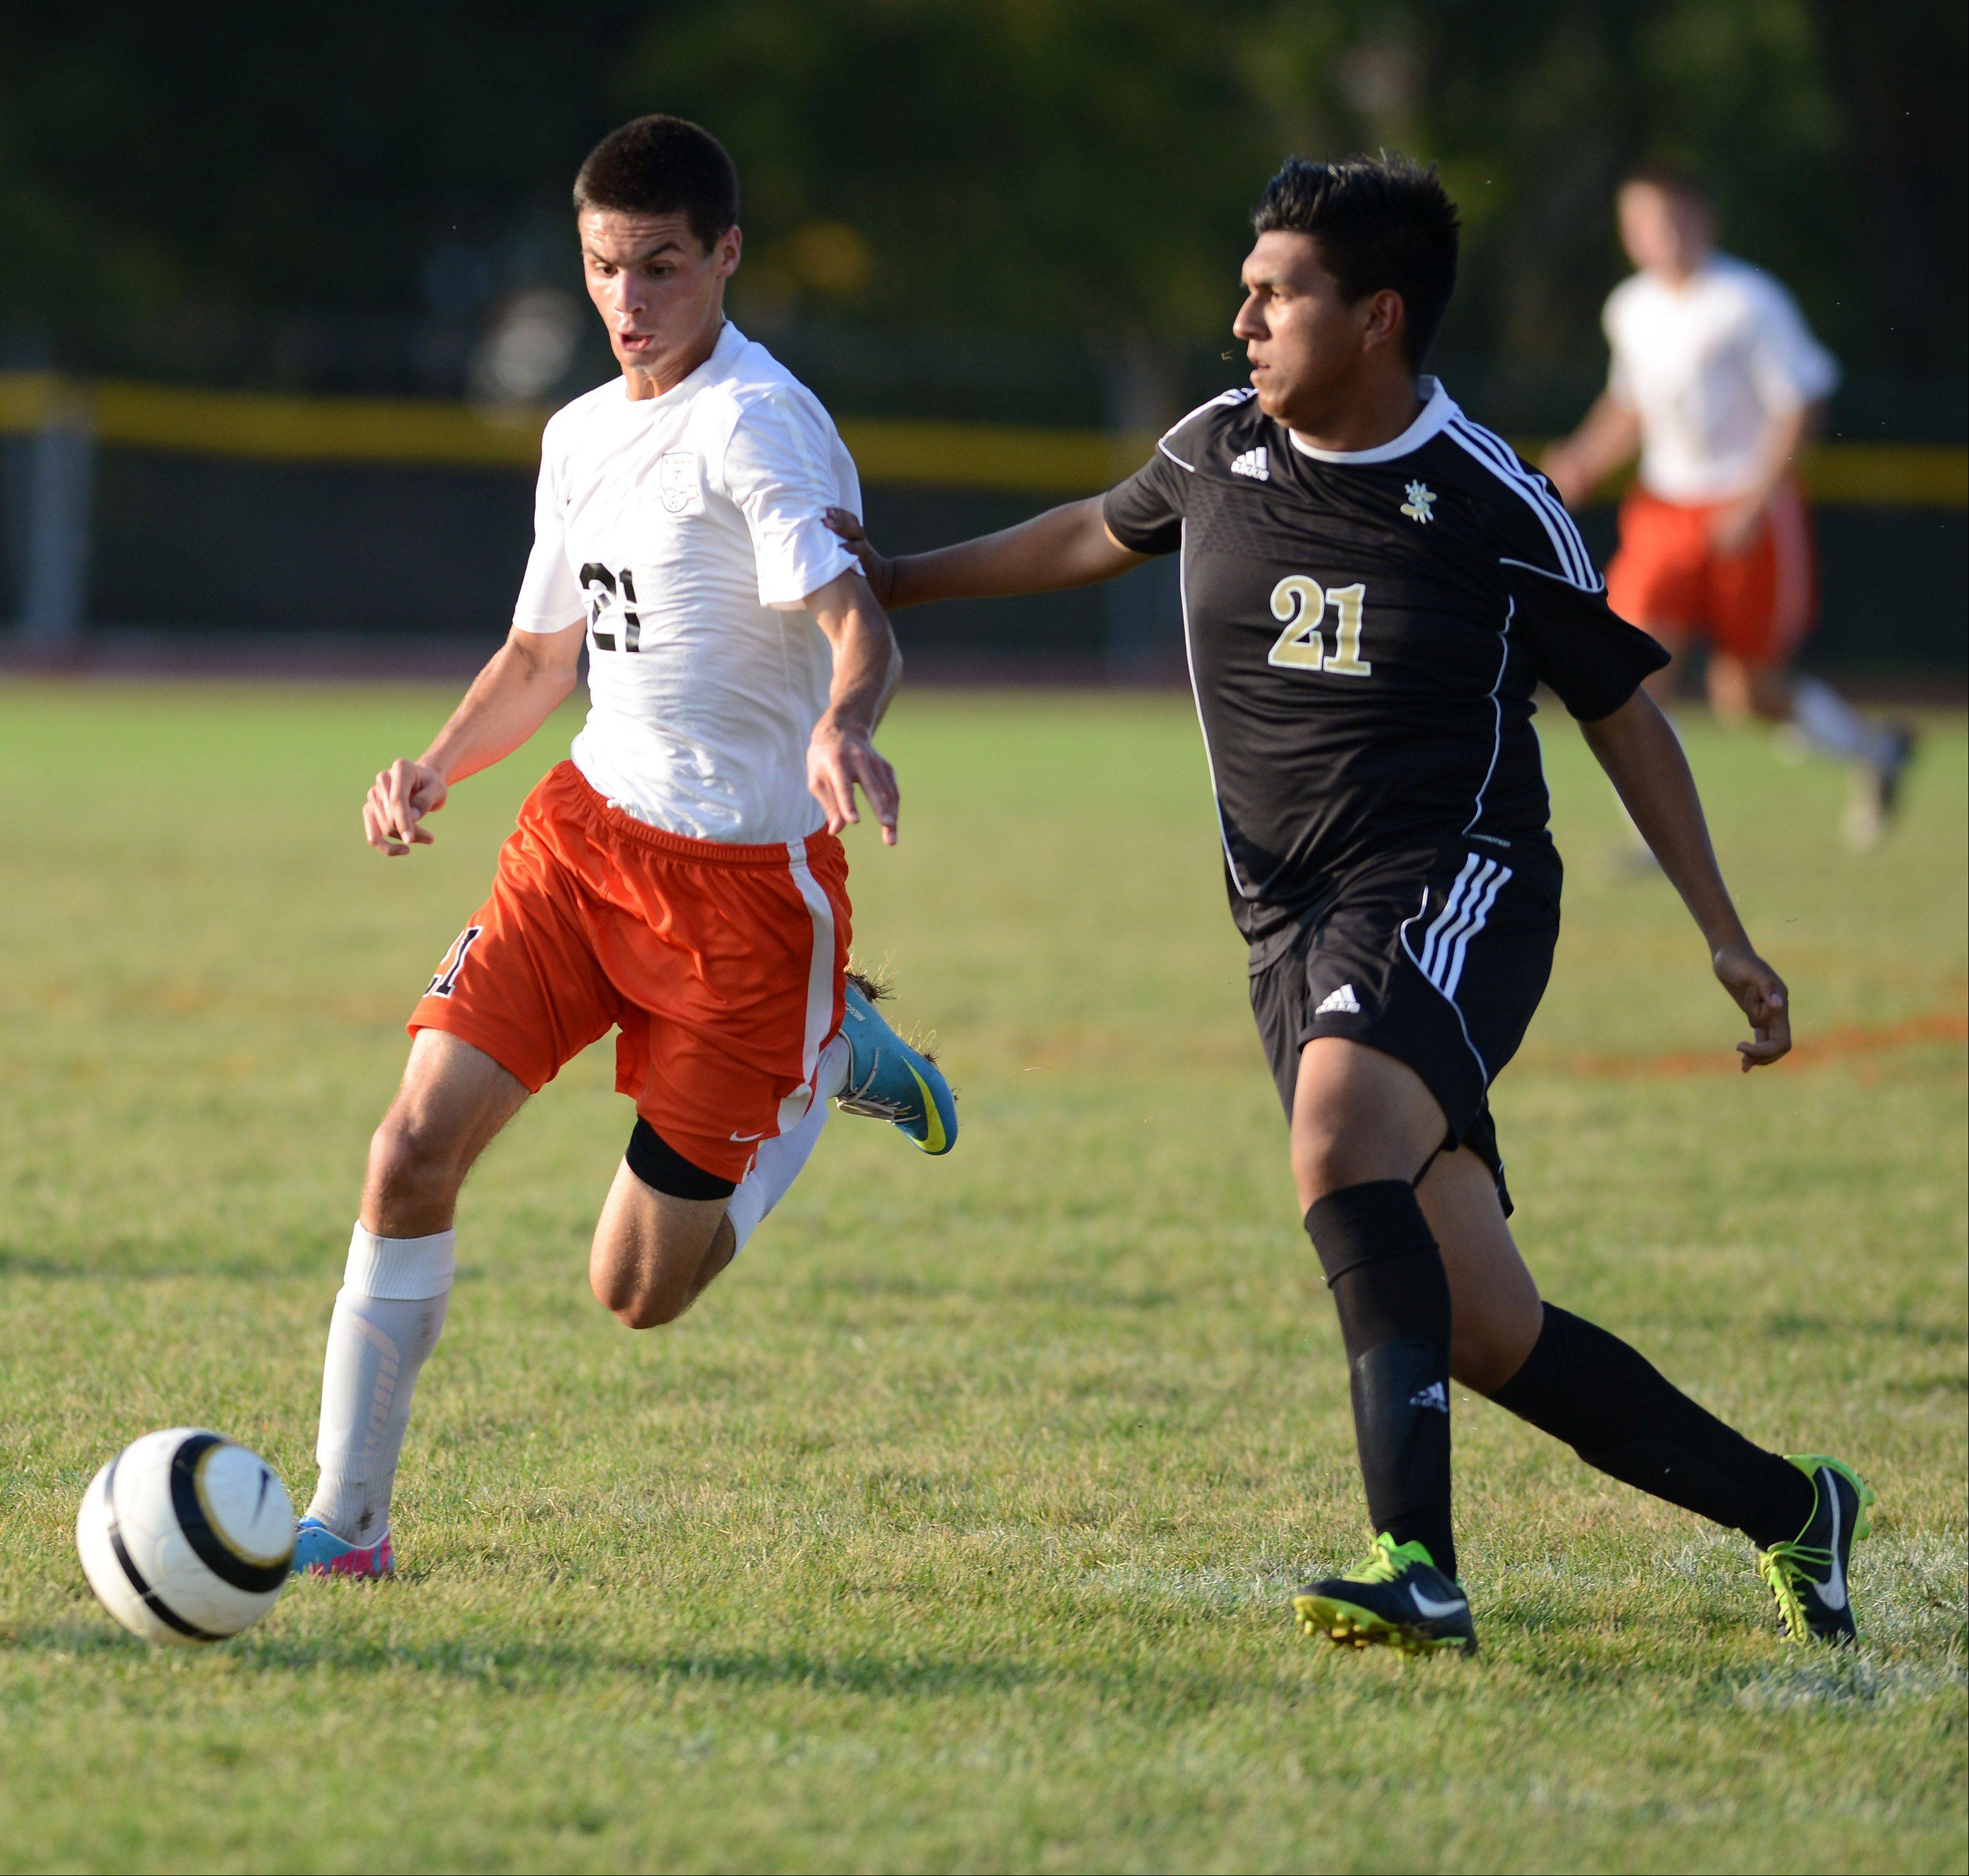 St. Charles East's Daniel DiLeonardi brings the ball upfield while being defended by Streamwood's Manny Carrillo during Thursday's game in St. Charles.